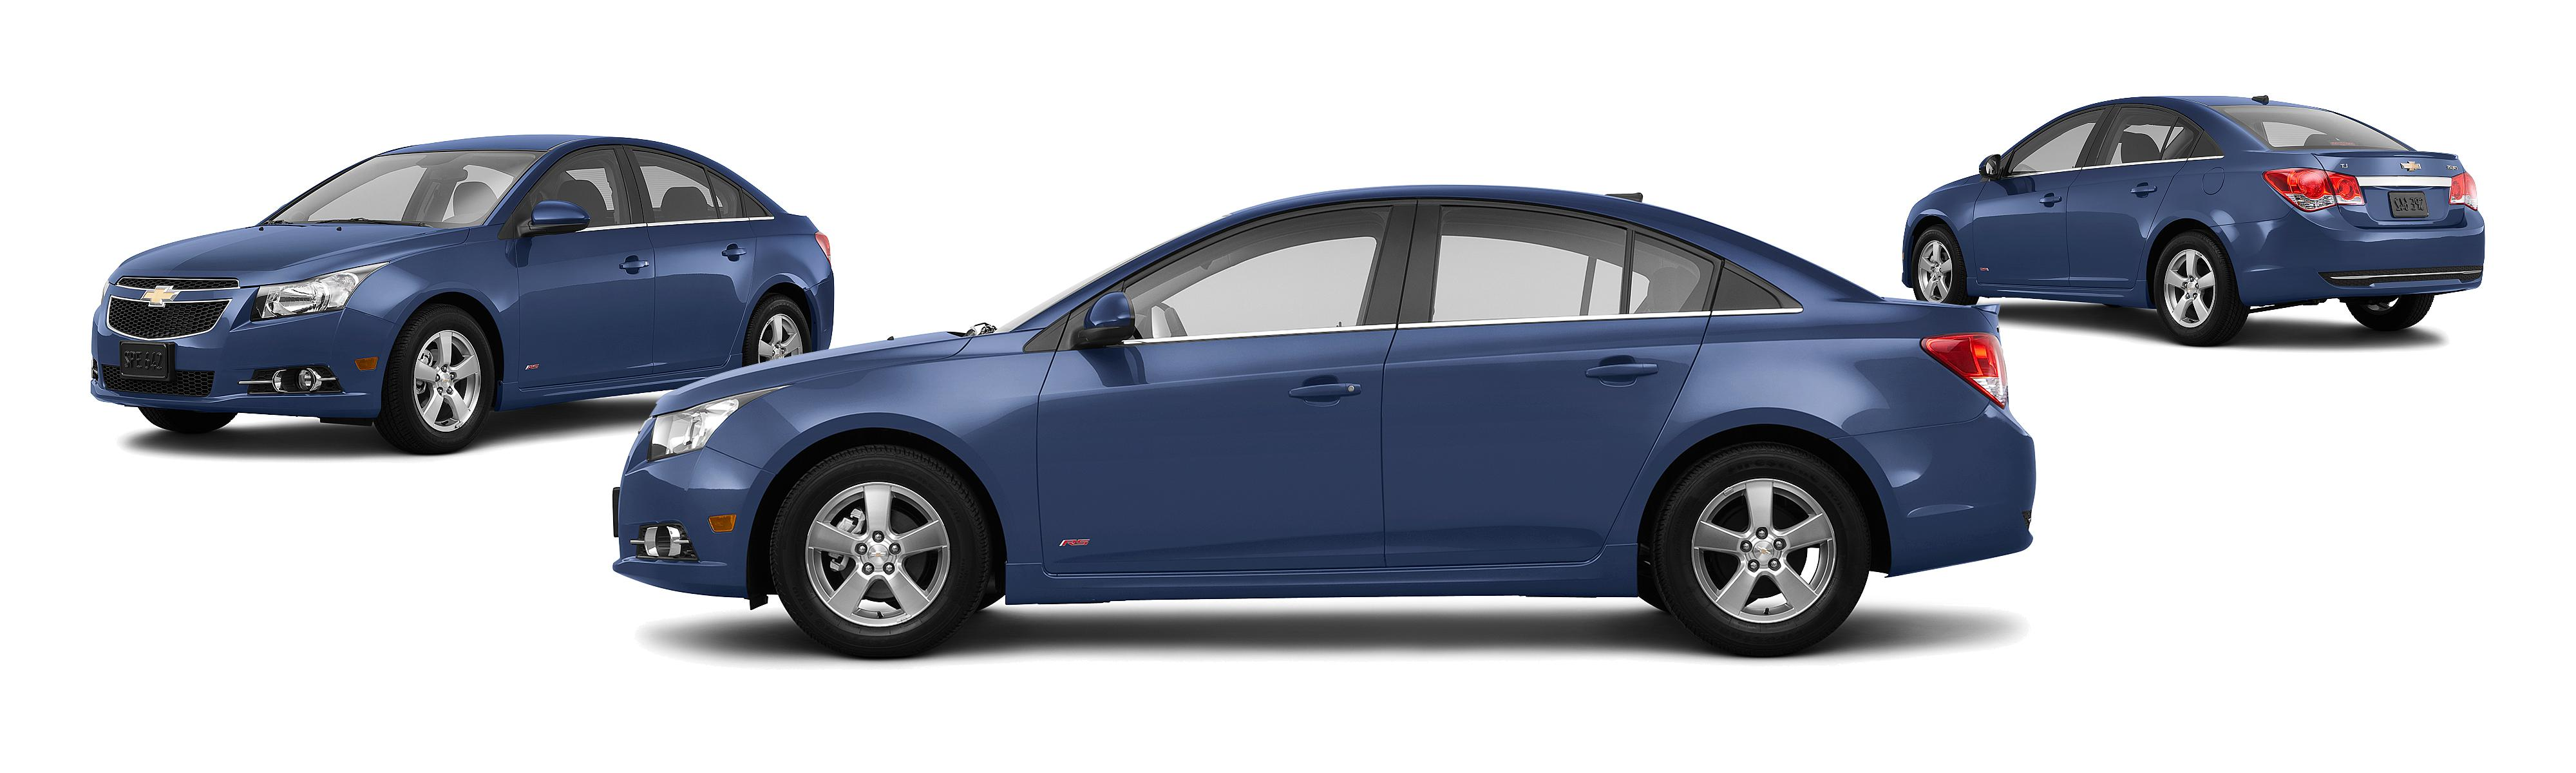 in hatchback perfect chevrolet hatch cruze premier test a trim is the as chevy drive review lsd